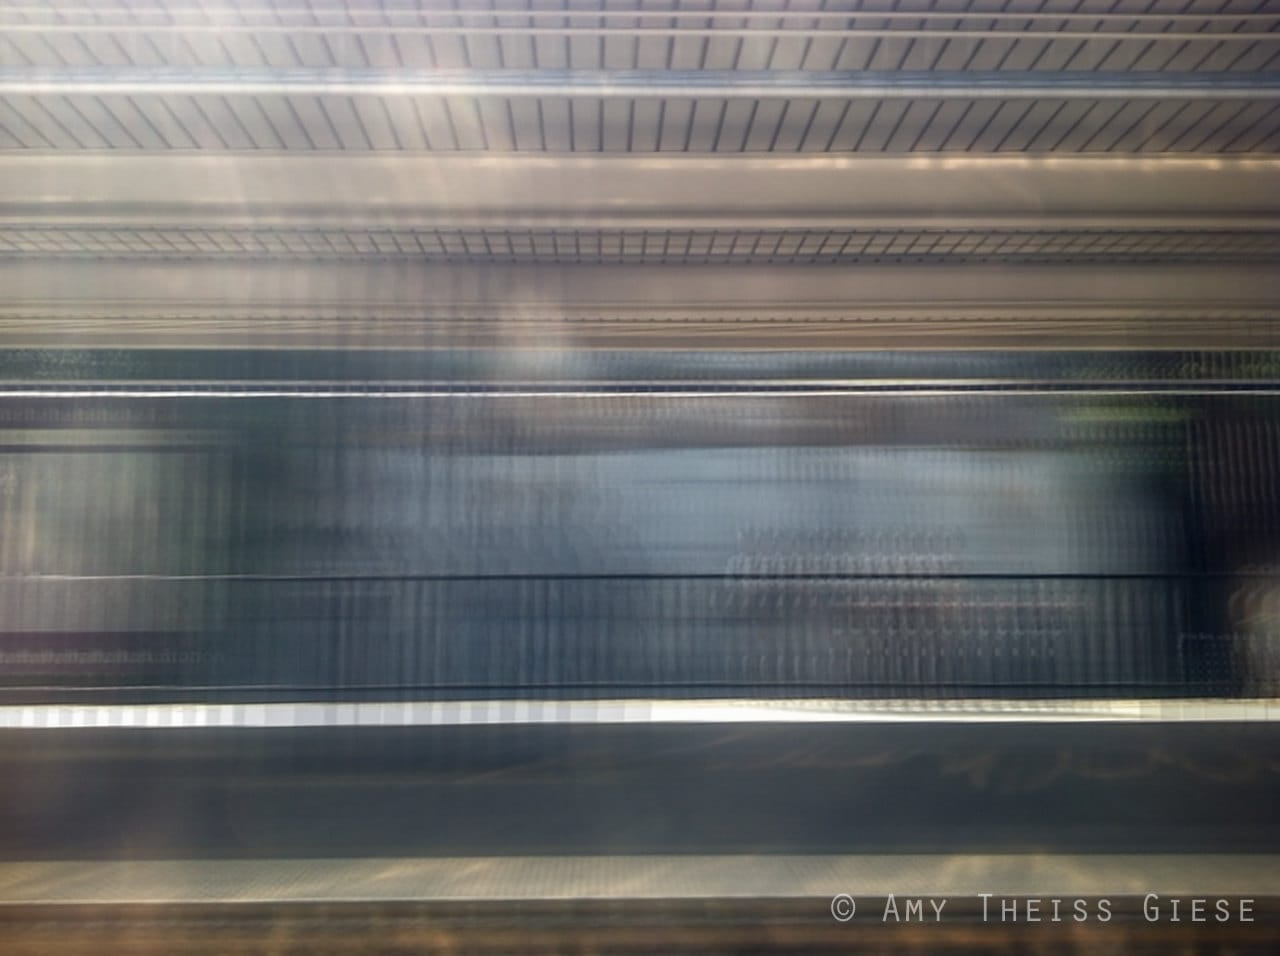 Linear Geometric Abstract Photography - 5x7 Blur, Blue, Gray, Lines, Movement - atgiese